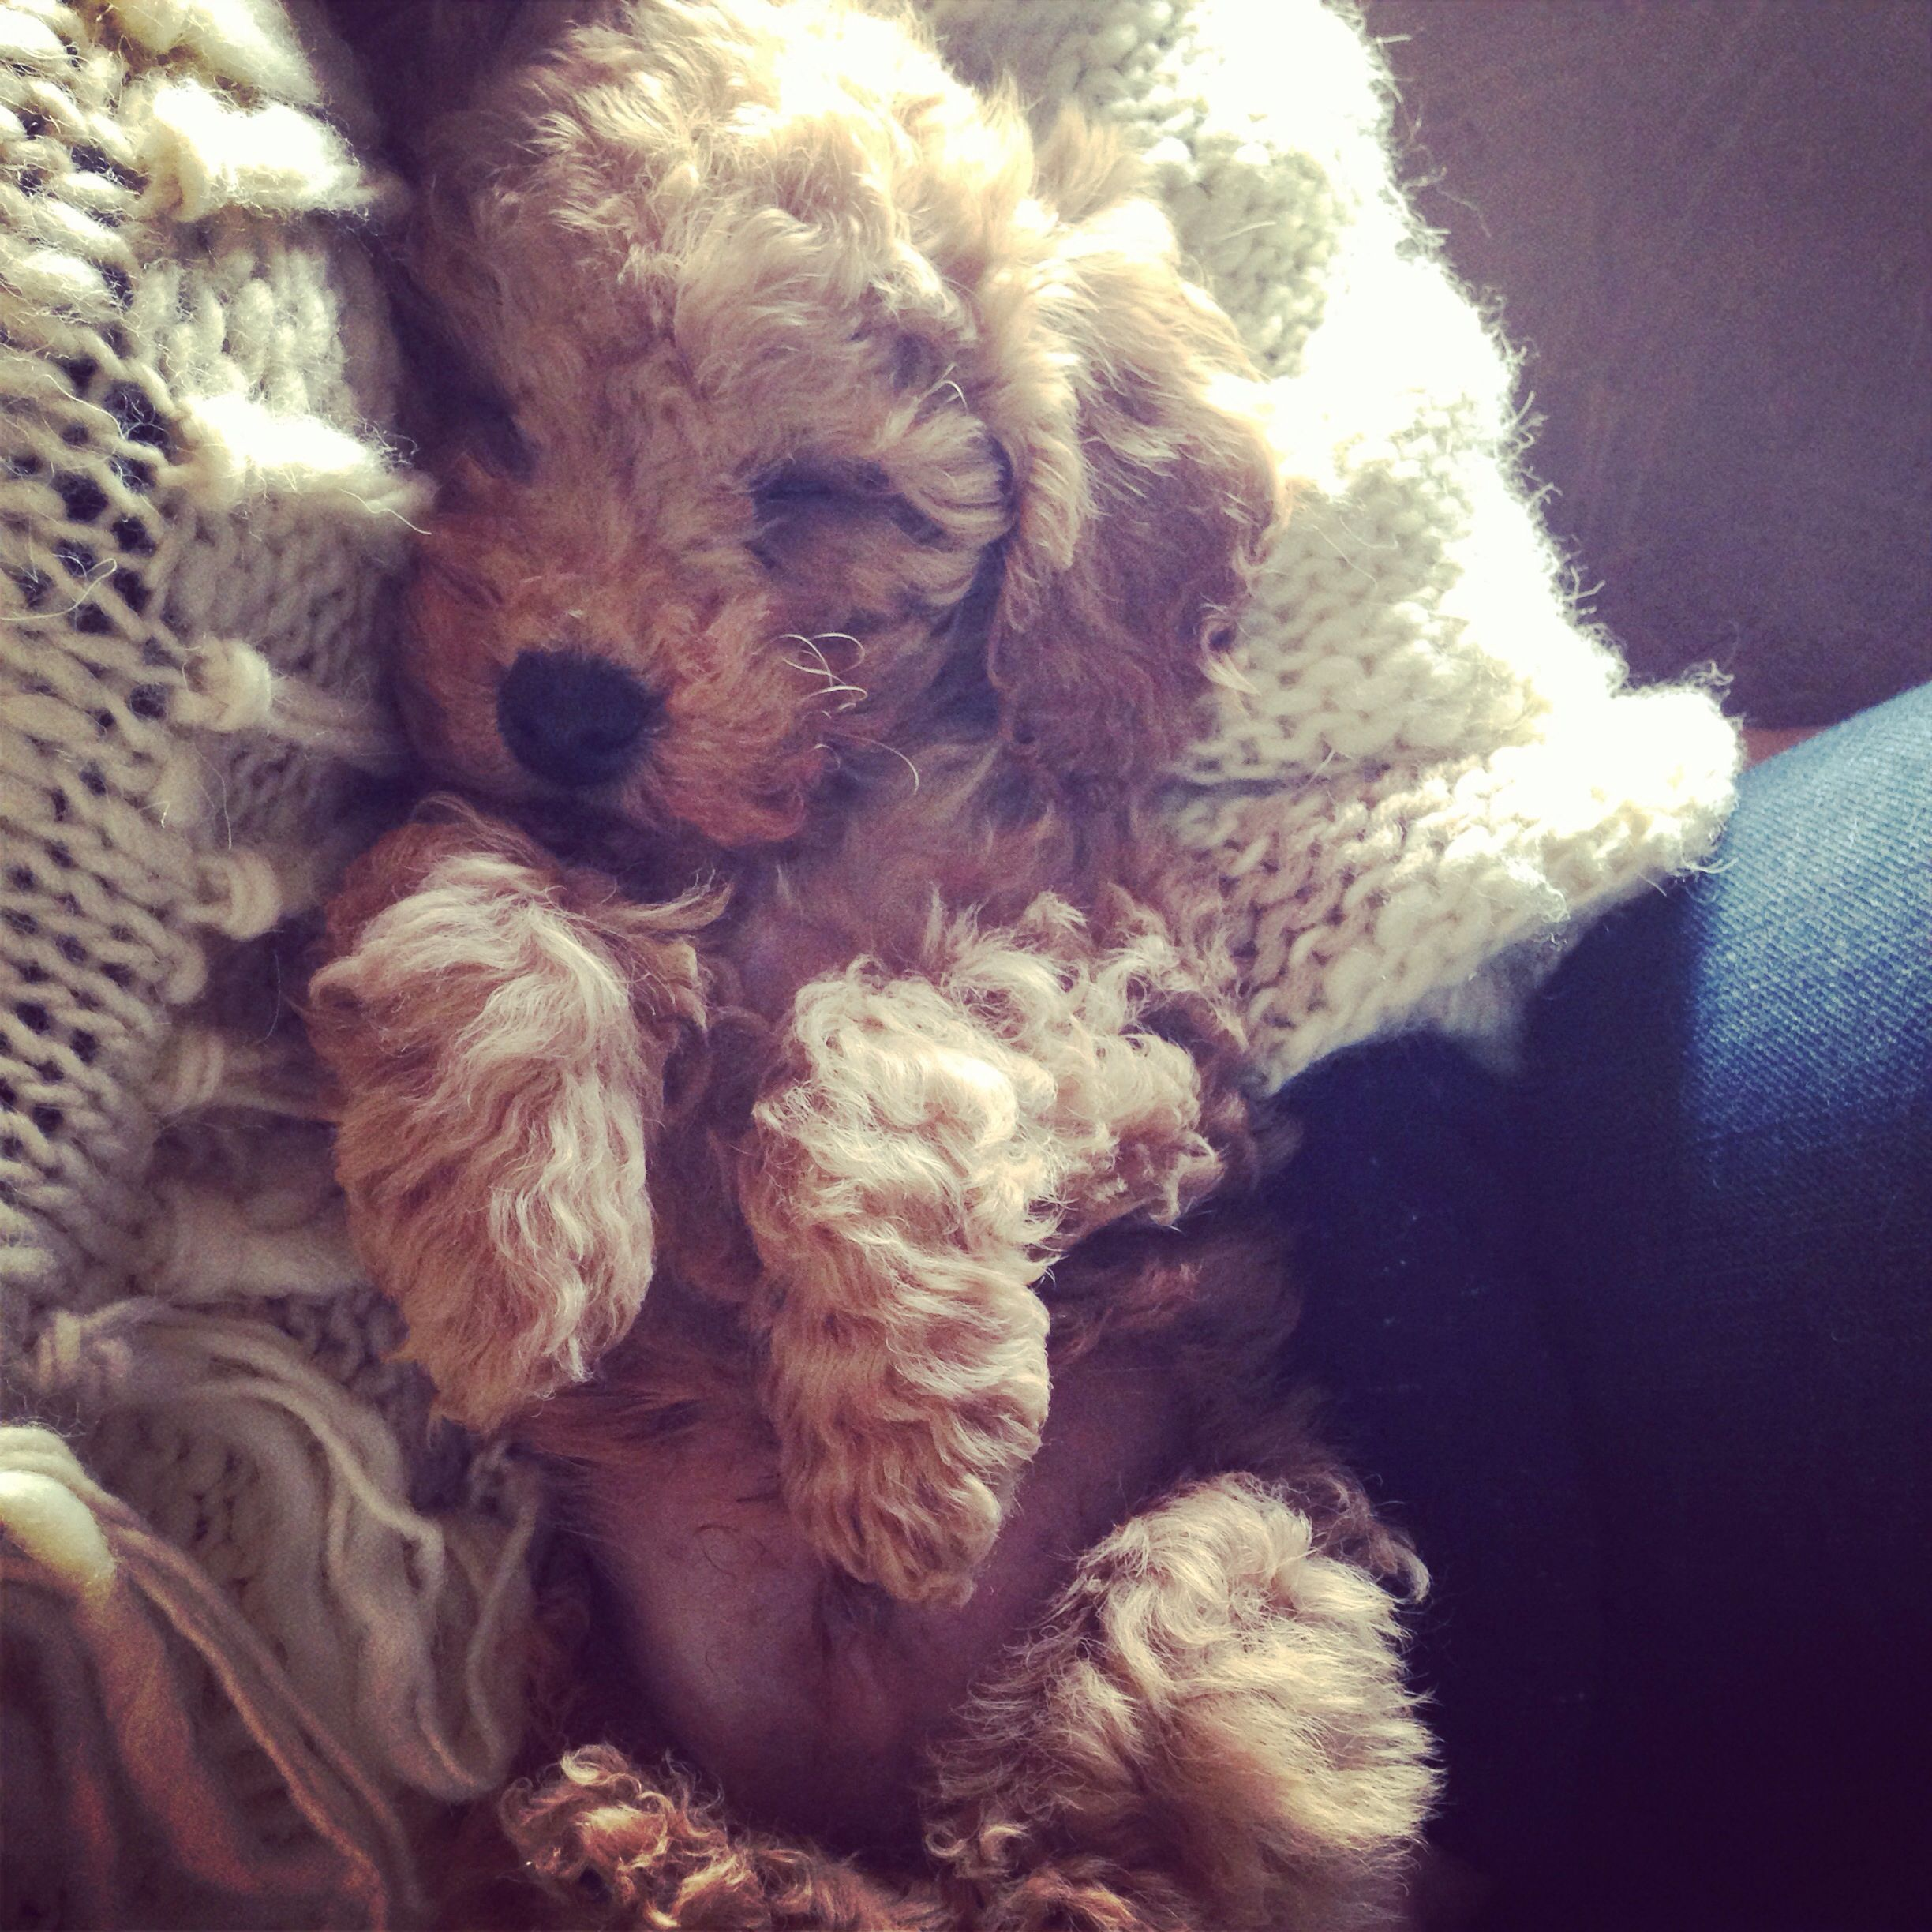 Vicious Circle Poodle Puppy Puppies Cute Dogs